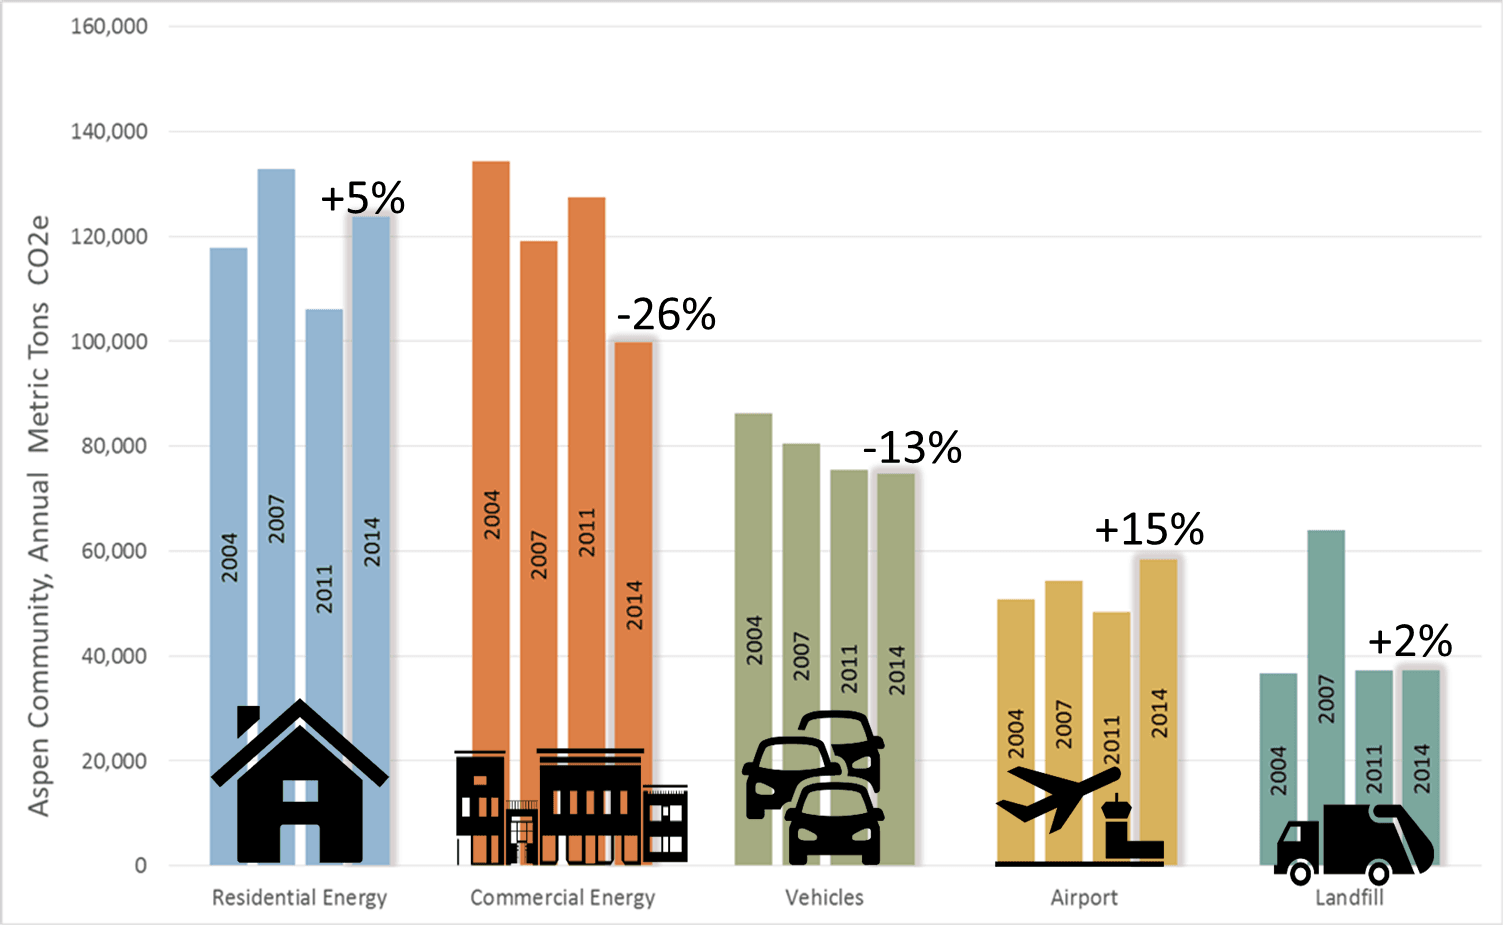 Bar Graph of Aspen Community Category Emissions